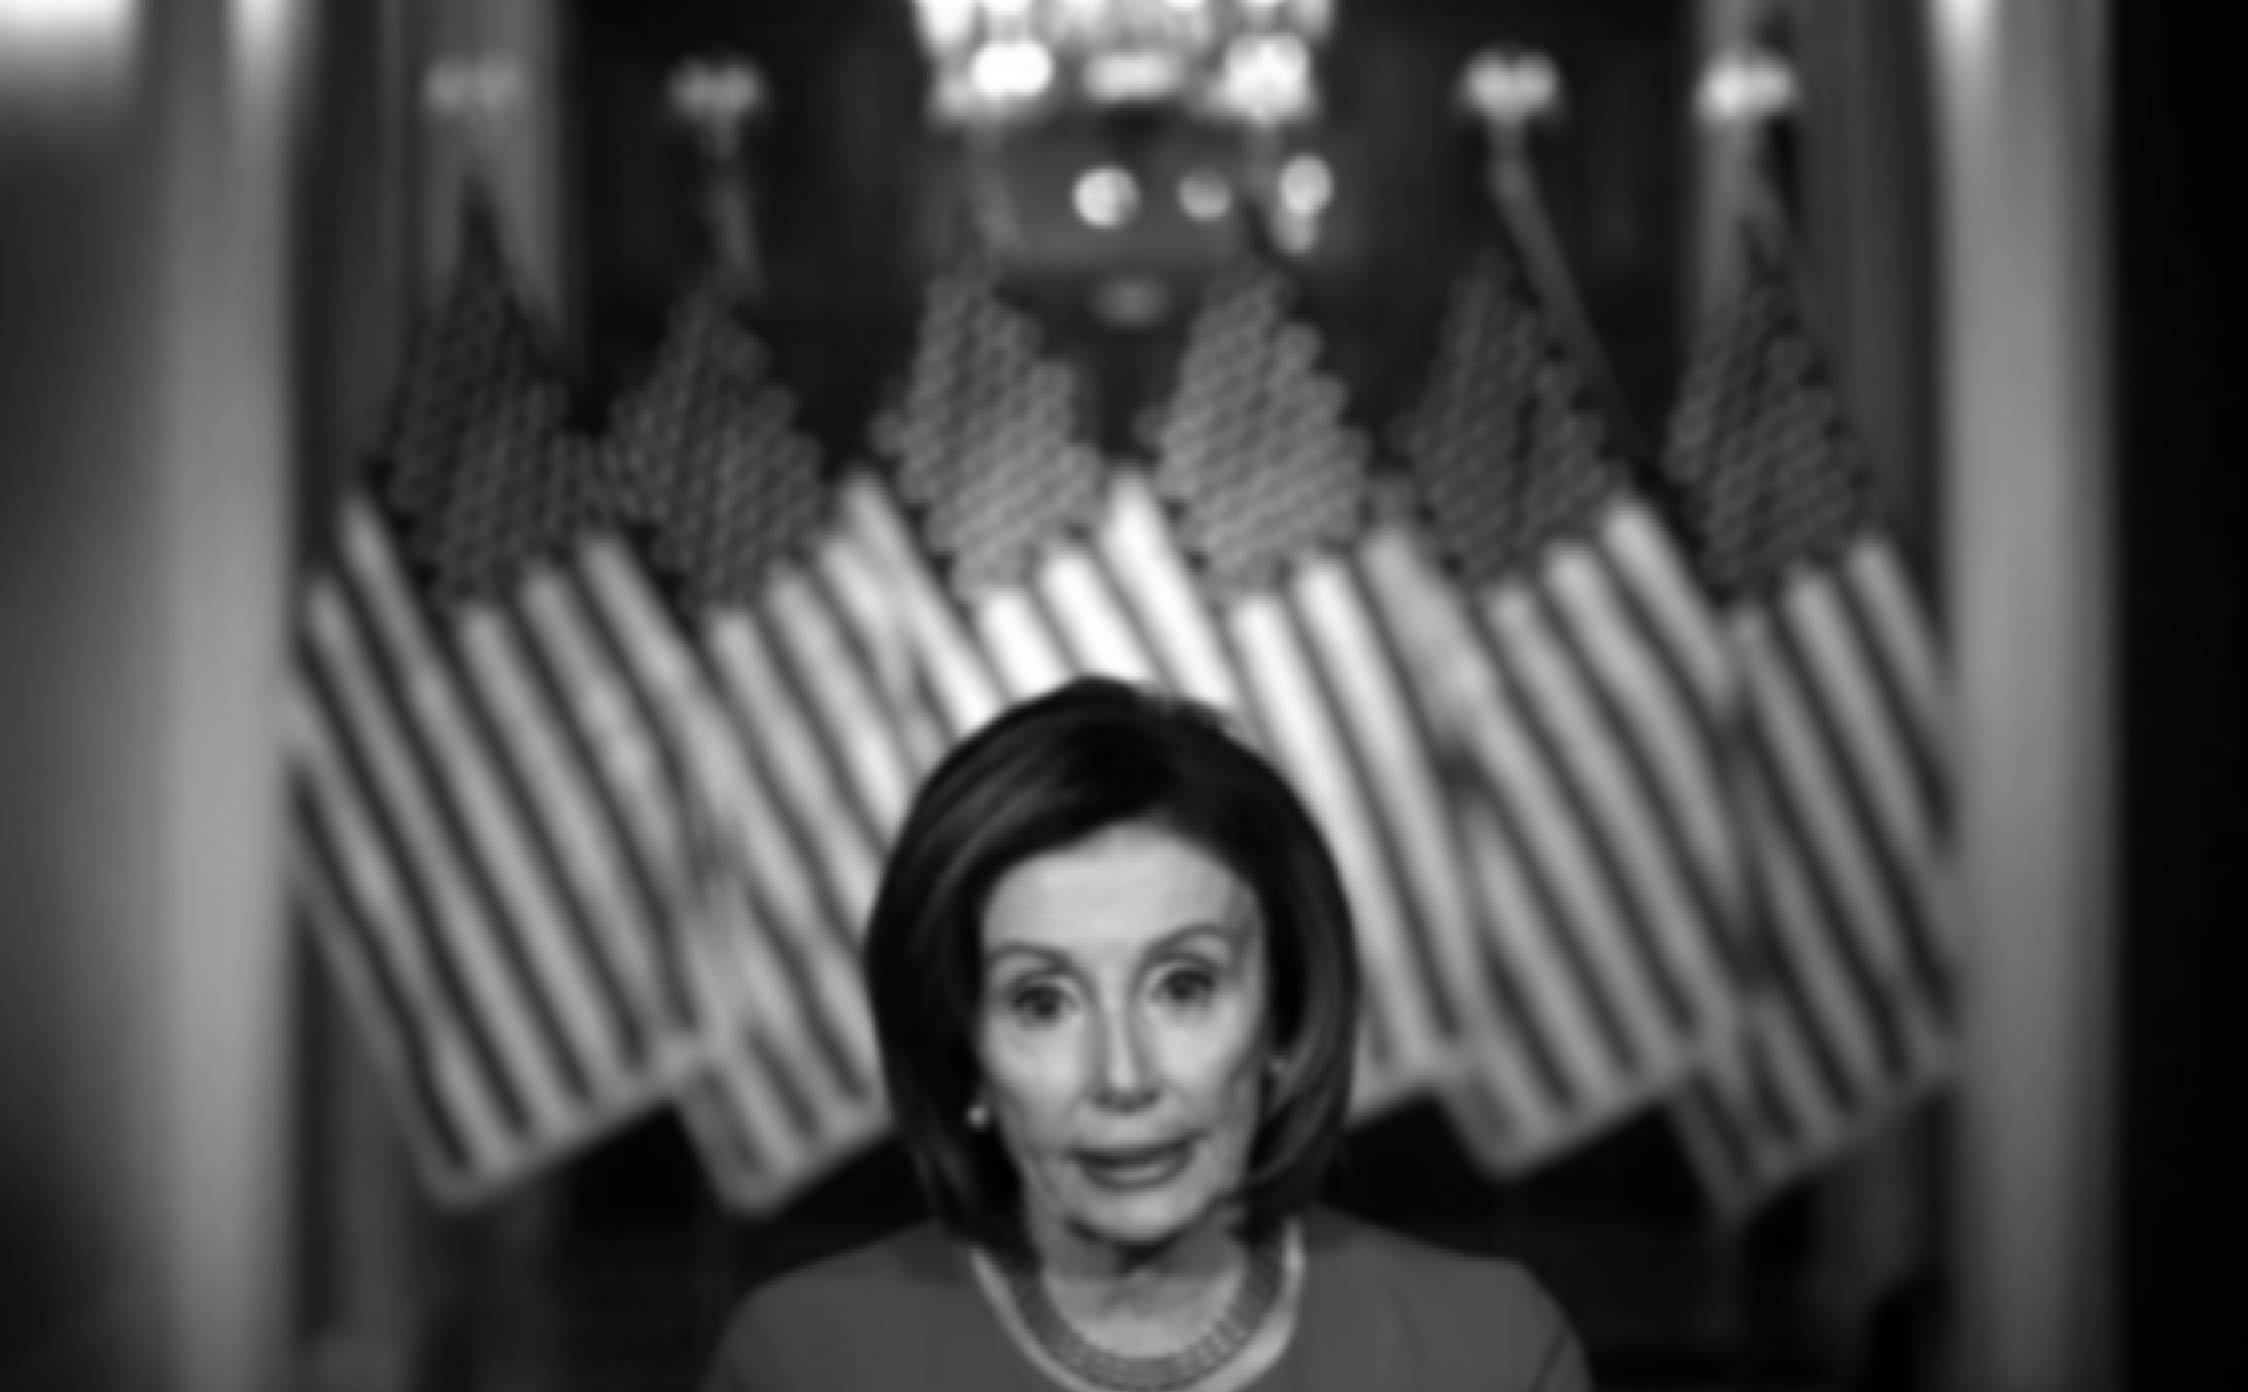 Democrats Have a Very Serious Plan to Make Nancy Pelosi U.S. President On January 20th at Exactly 12:01 PM